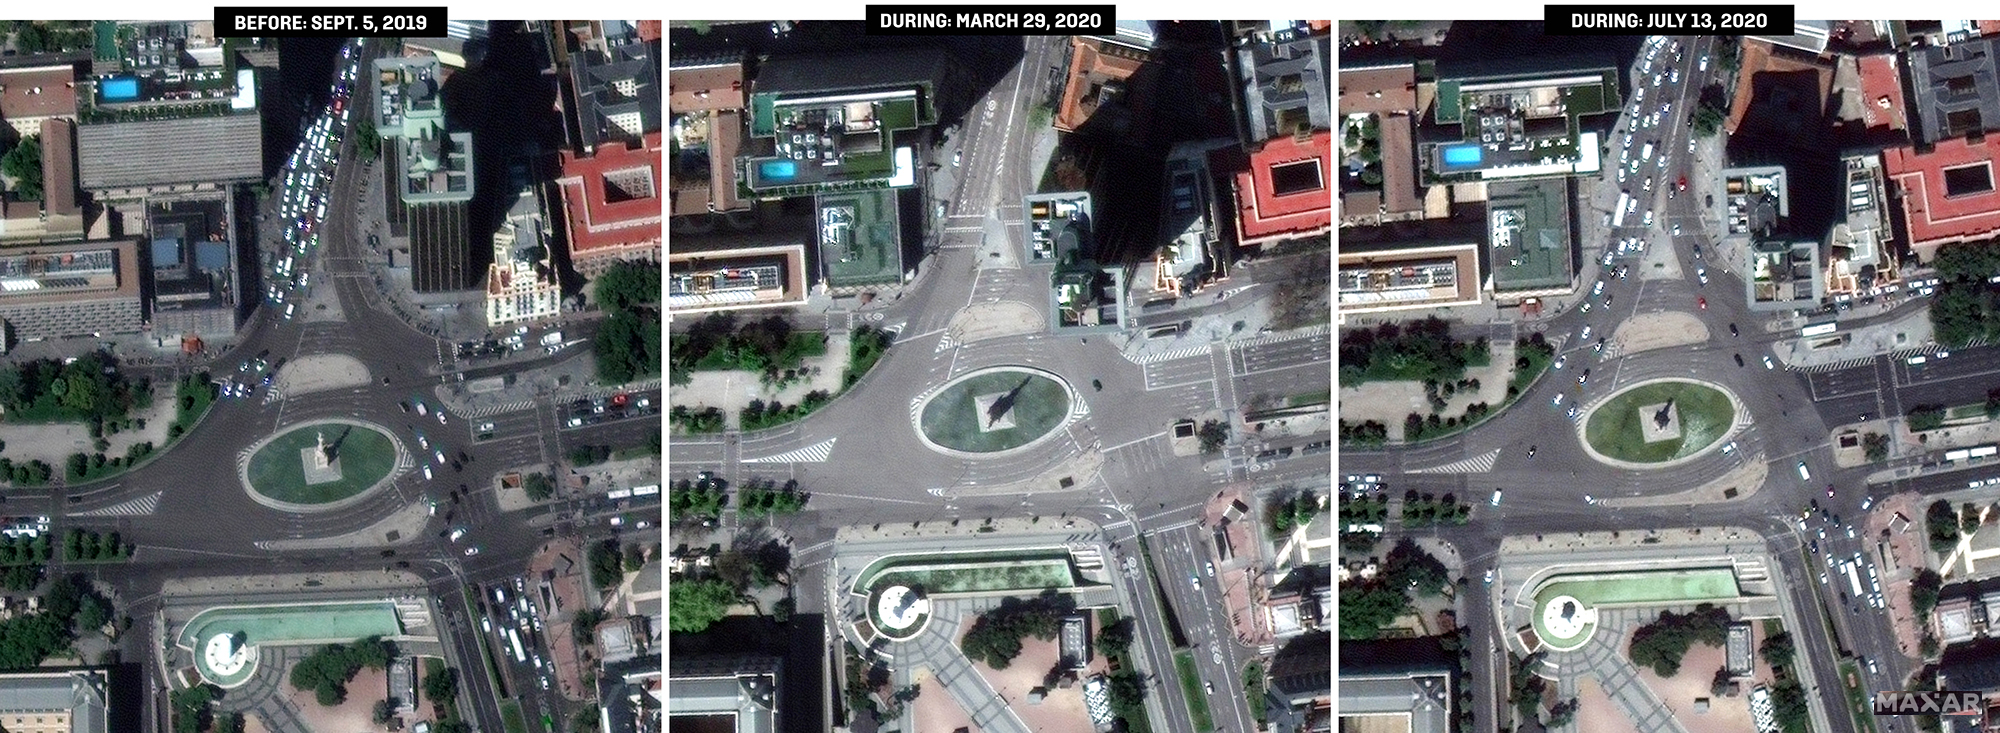 Satellite images show traffic on Paseo de la Castellana in downtown Madrid before the pandemic, soon after the lockdown began, and in July as traffic ticked up again.